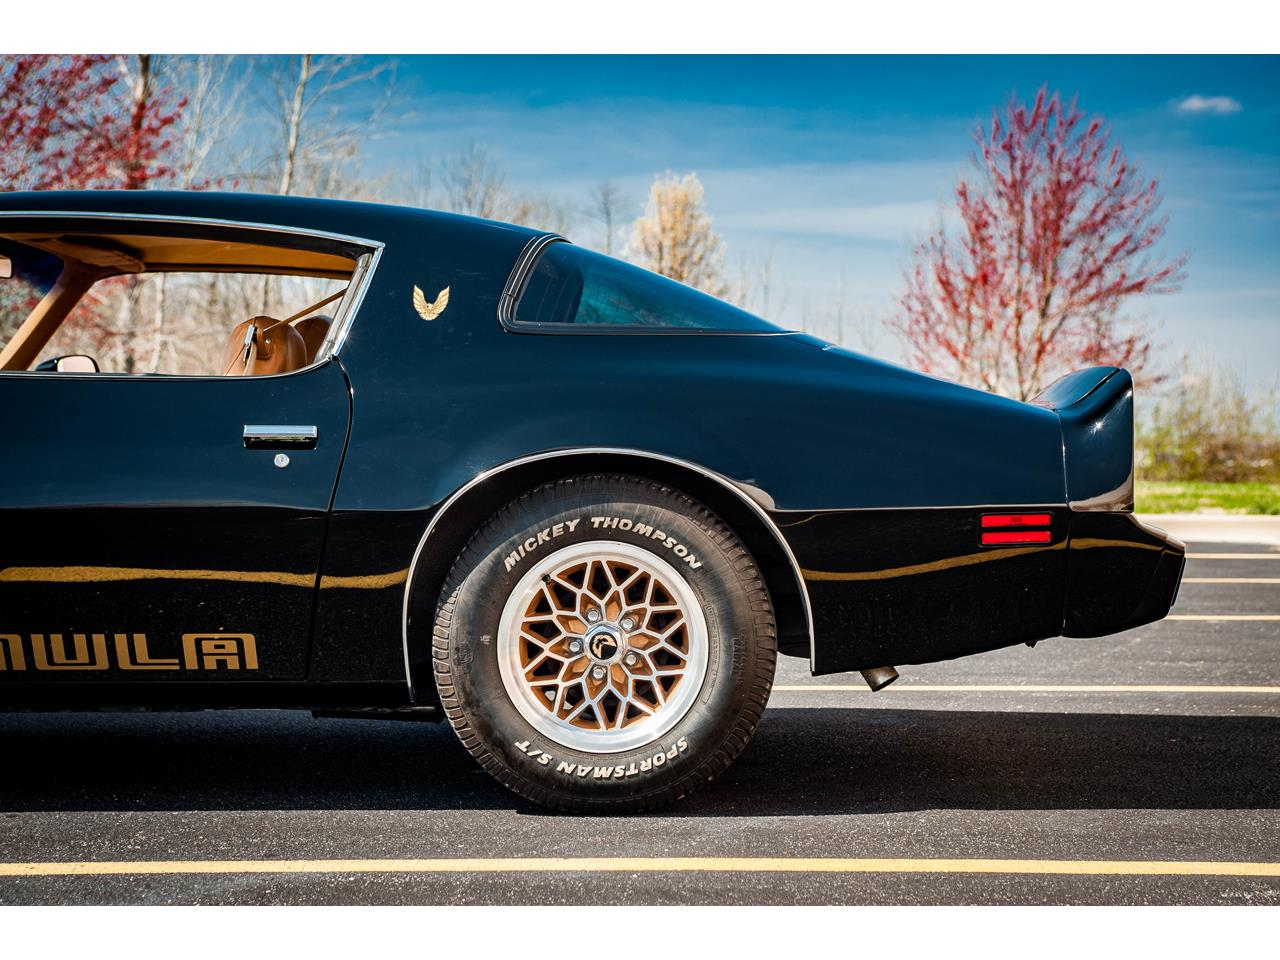 Large Picture of '79 Pontiac Firebird located in Illinois Offered by Gateway Classic Cars - St. Louis - QB8A